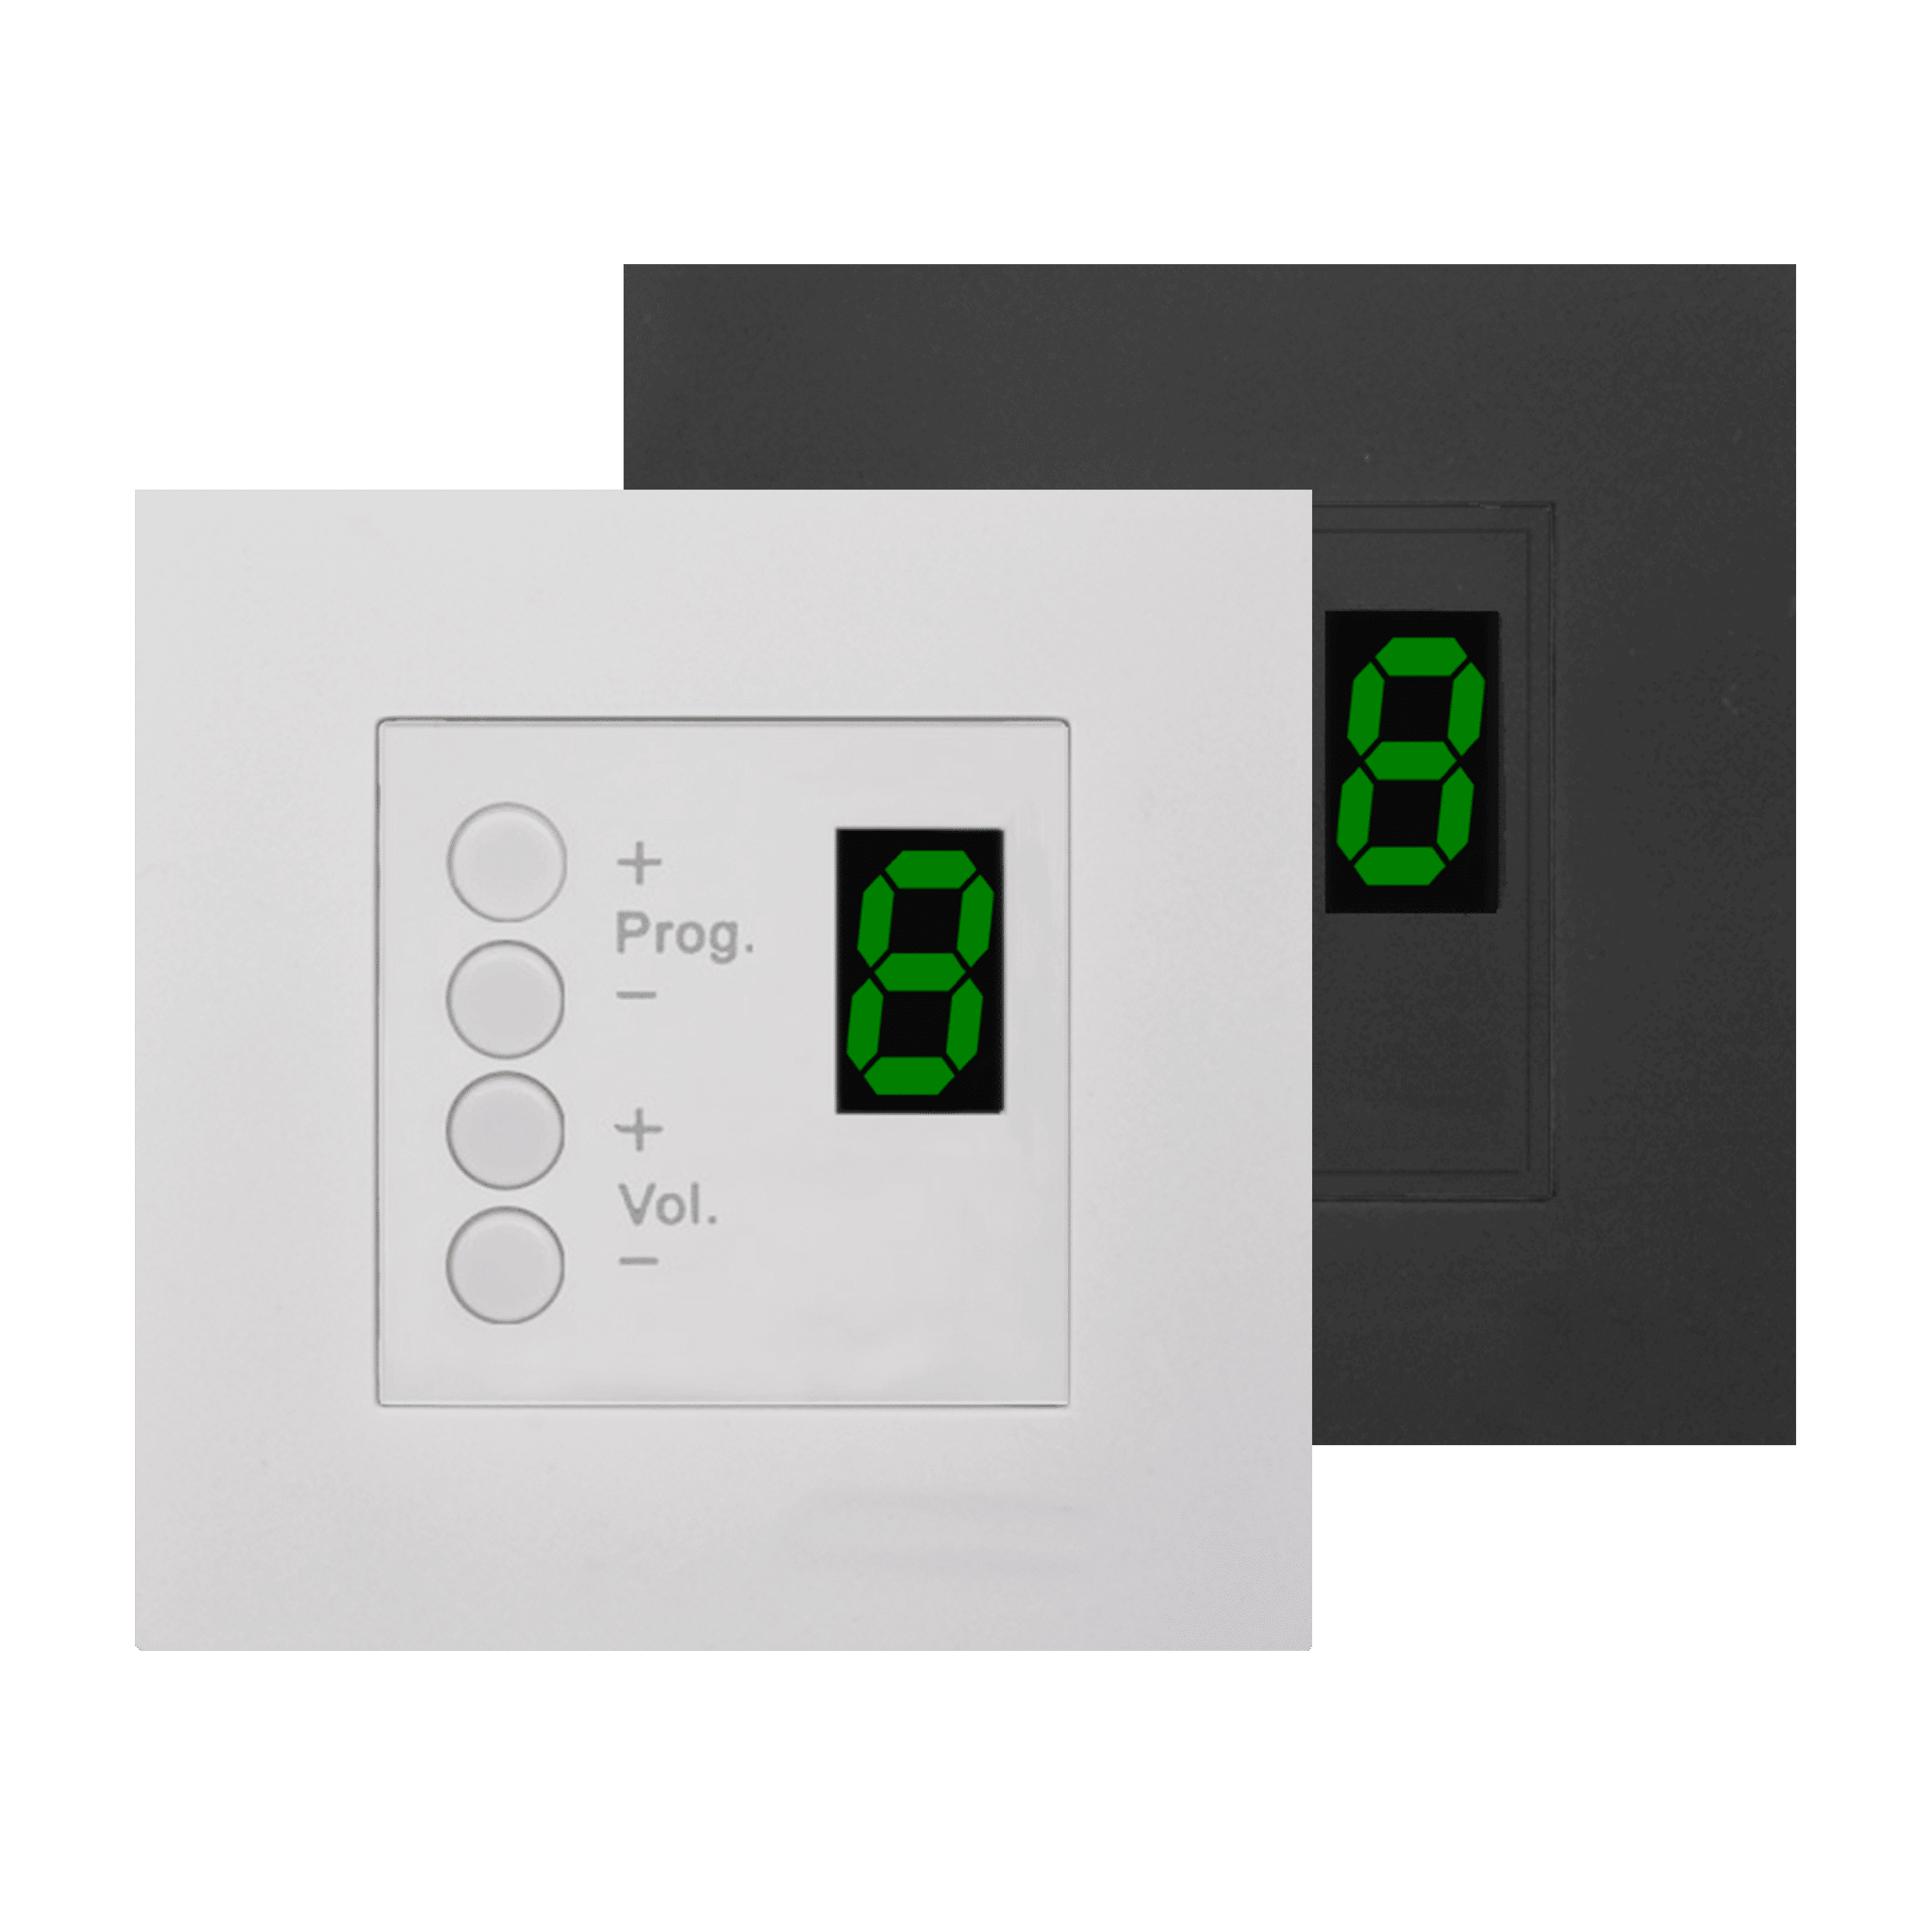 DW3018 - Wall panel controller 8 zones for 45x45 standard